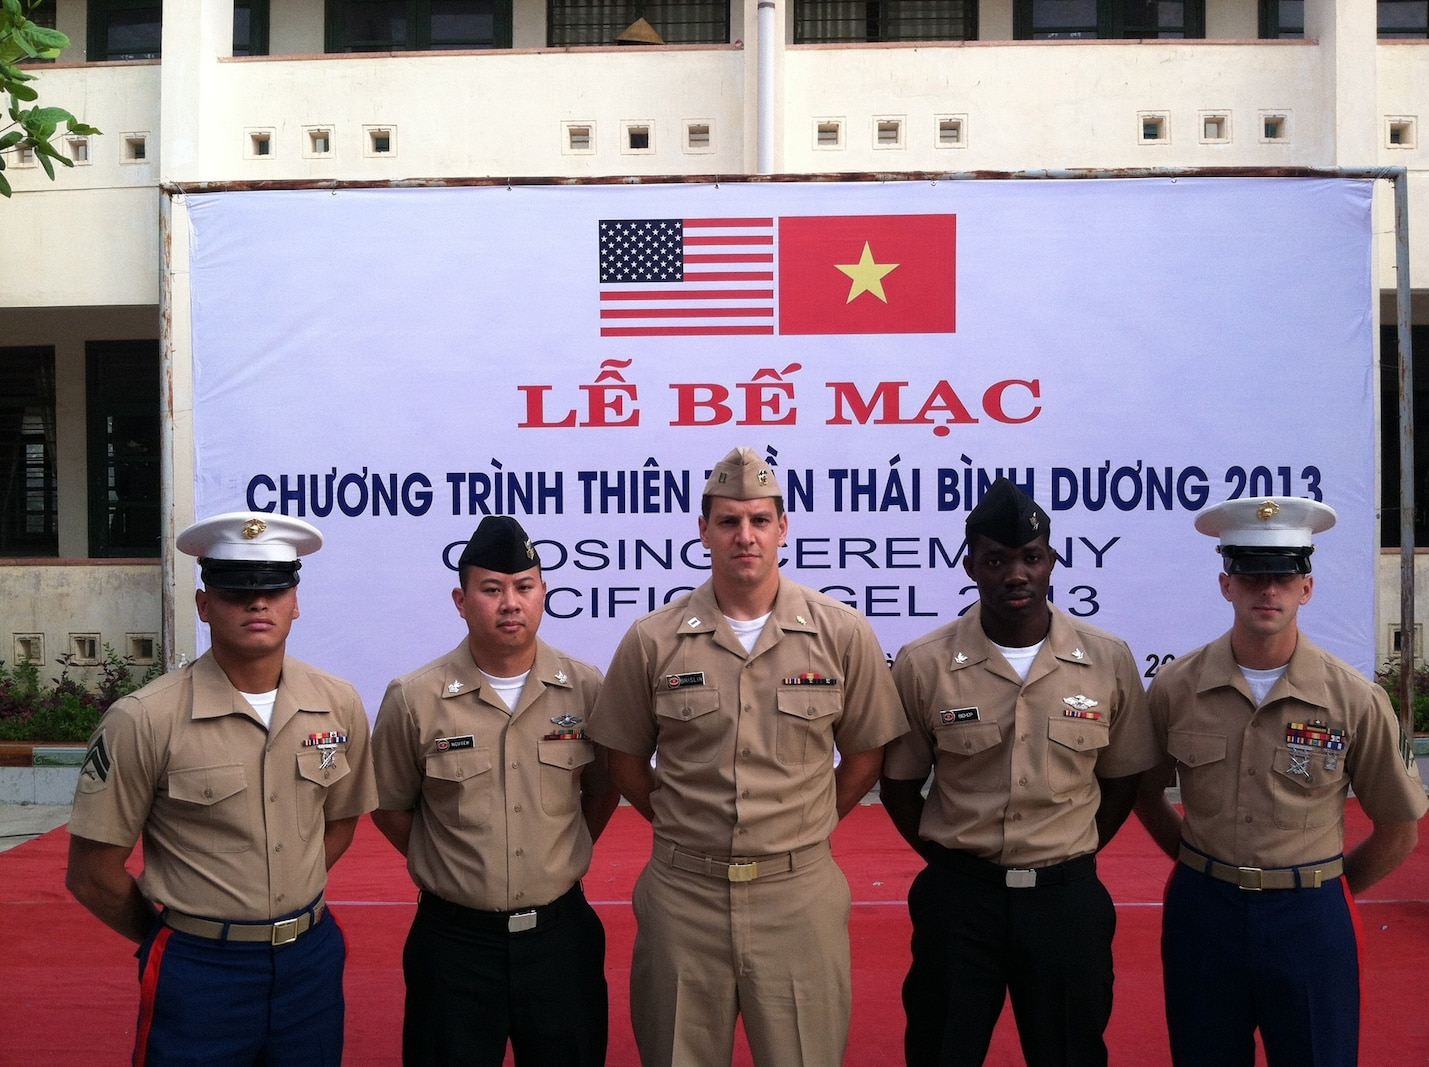 From left to right: Corporal Max Tijerino, 7th Engineer Support Battalion, 1st Marine Logistics Group, Petty Officer 1st Class Lam D. Nguyen, Navy Lt. Thomas V. Brislin and Petty Officer 3rd Class Kirk Bishop, all from 1st Dental Battalion, 1st MLG, and Sgt. Nathan  Hunt, 7th ESB, stand during the closing ceremony for Pacific Angel 2013. Pacific Angel provided humanitarian civic assistance and  conducted civil-military operations to areas in need in the Pacific region.